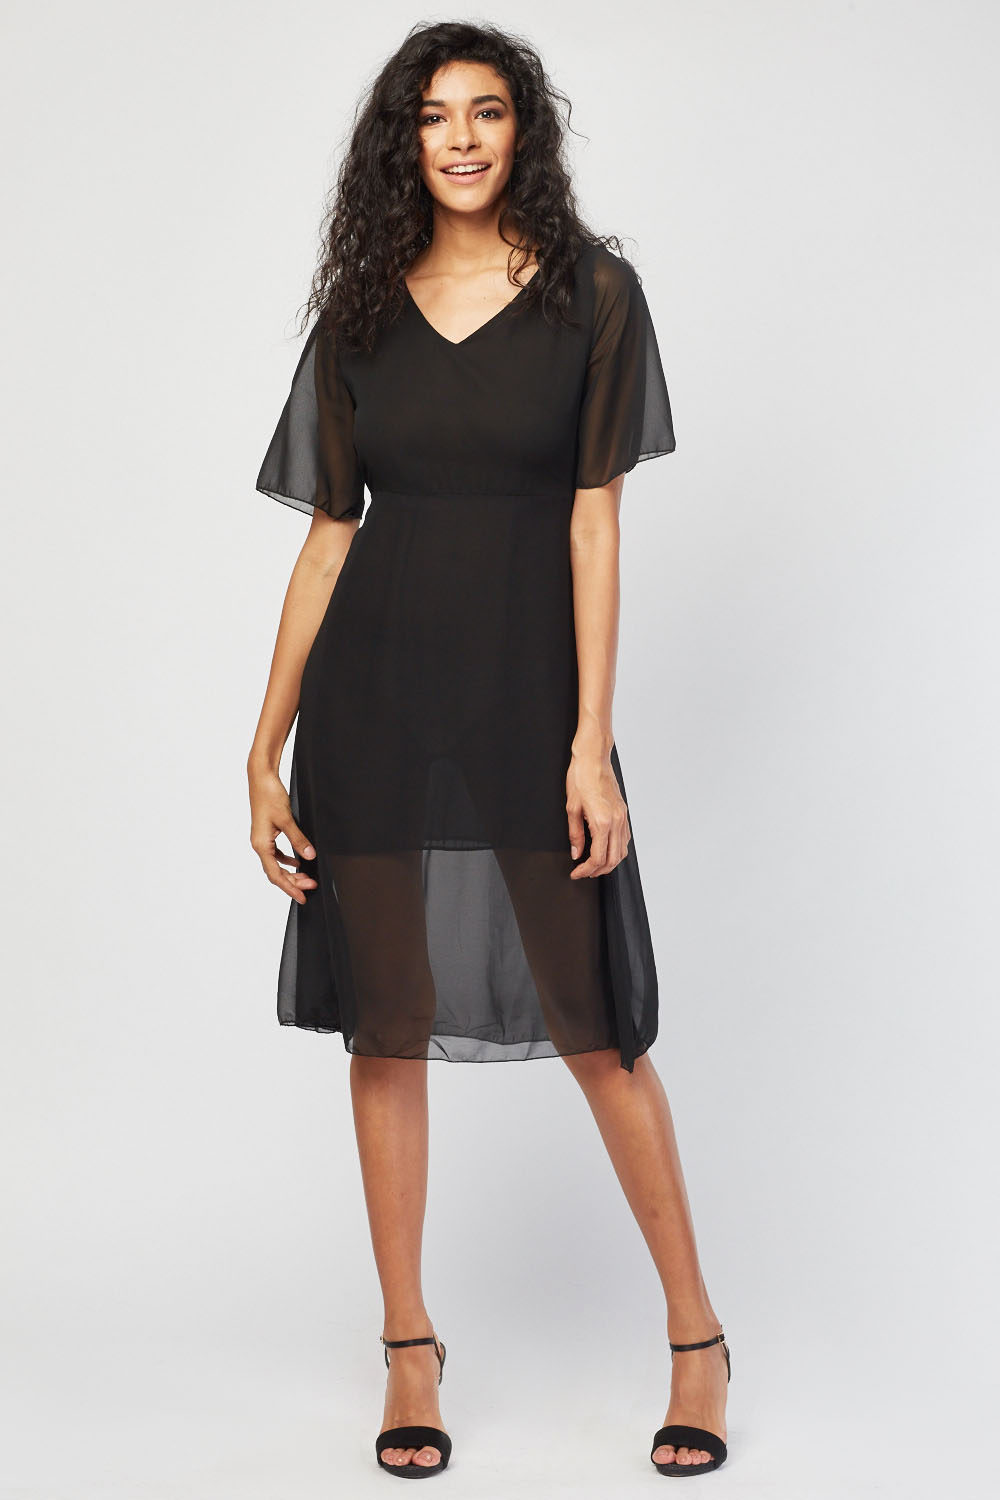 ec84e44cb0 Tie Up Sheer Chiffon Dress - Black - Just £5